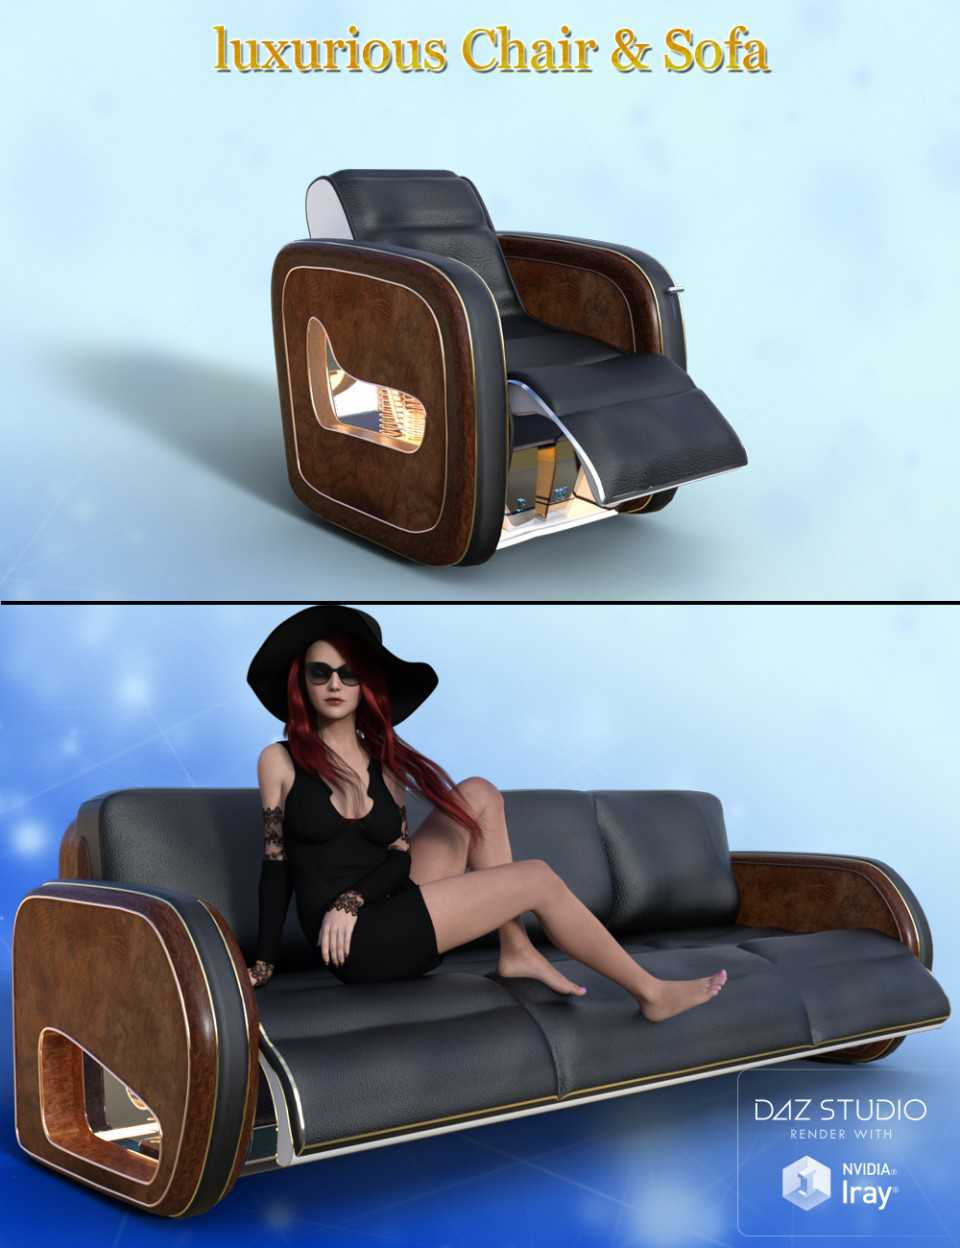 Luxurious Chair and Sofa